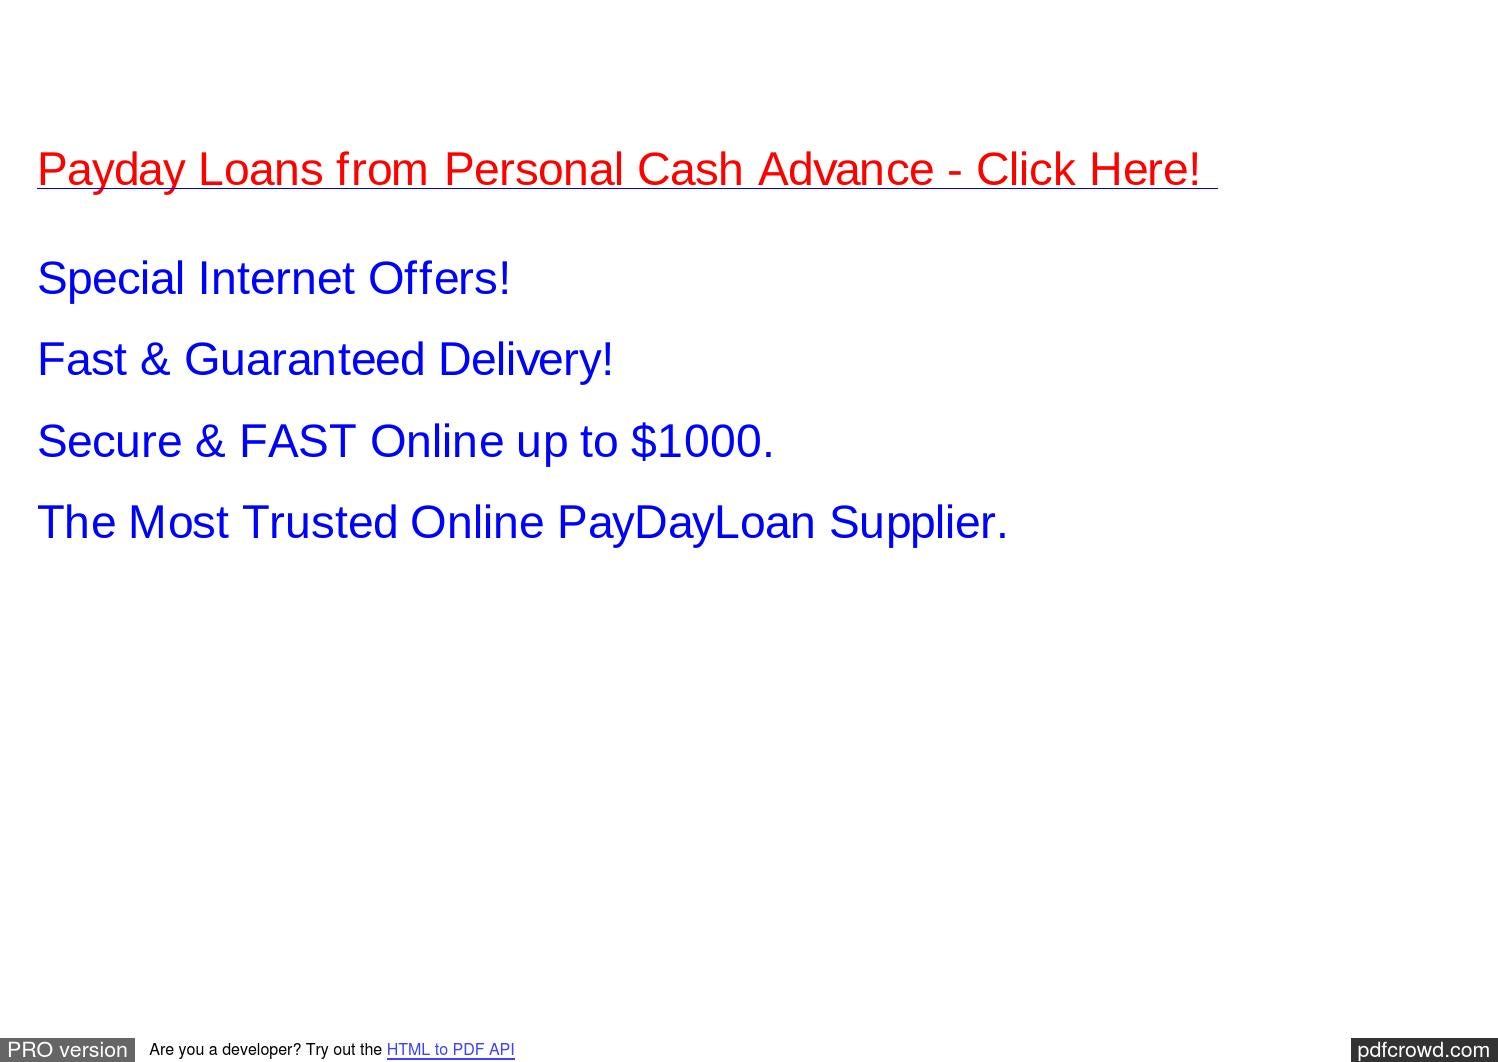 Payday loan rates california picture 10